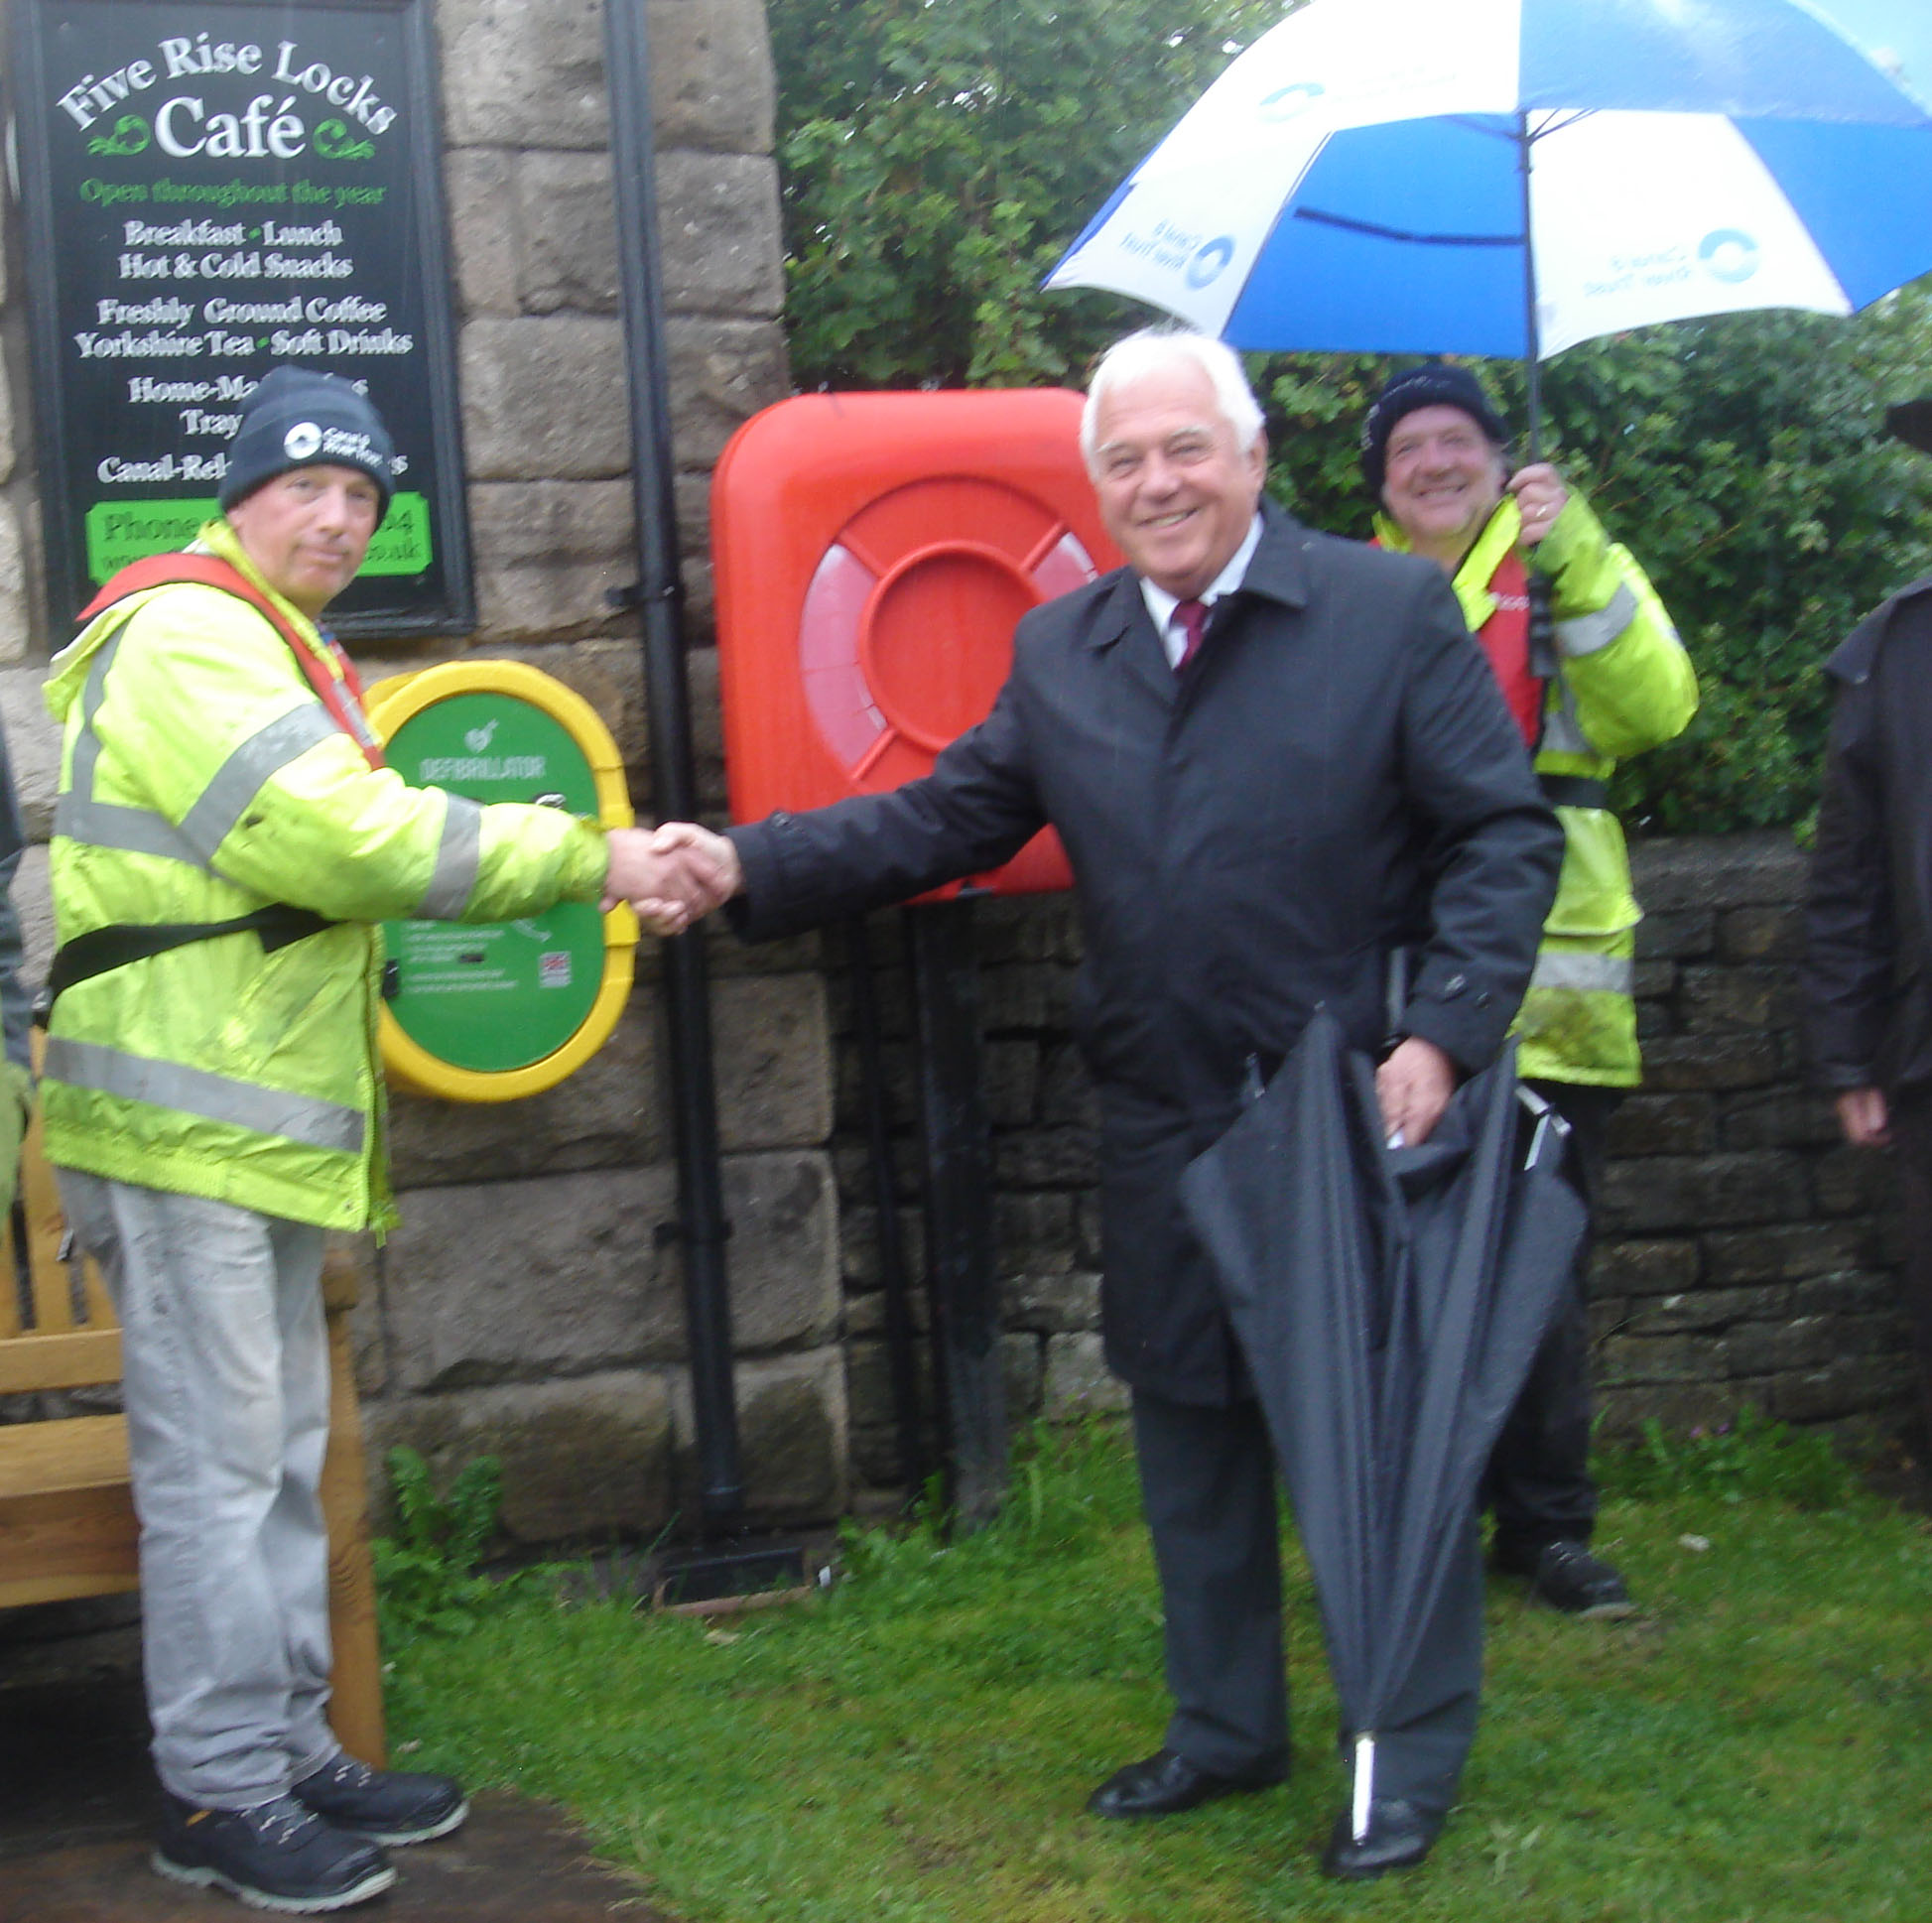 BINGLEY 5-RISE LOCKS GETS A PRESENT FROM THE CLEEVES AND WHITEHEAD TRUST